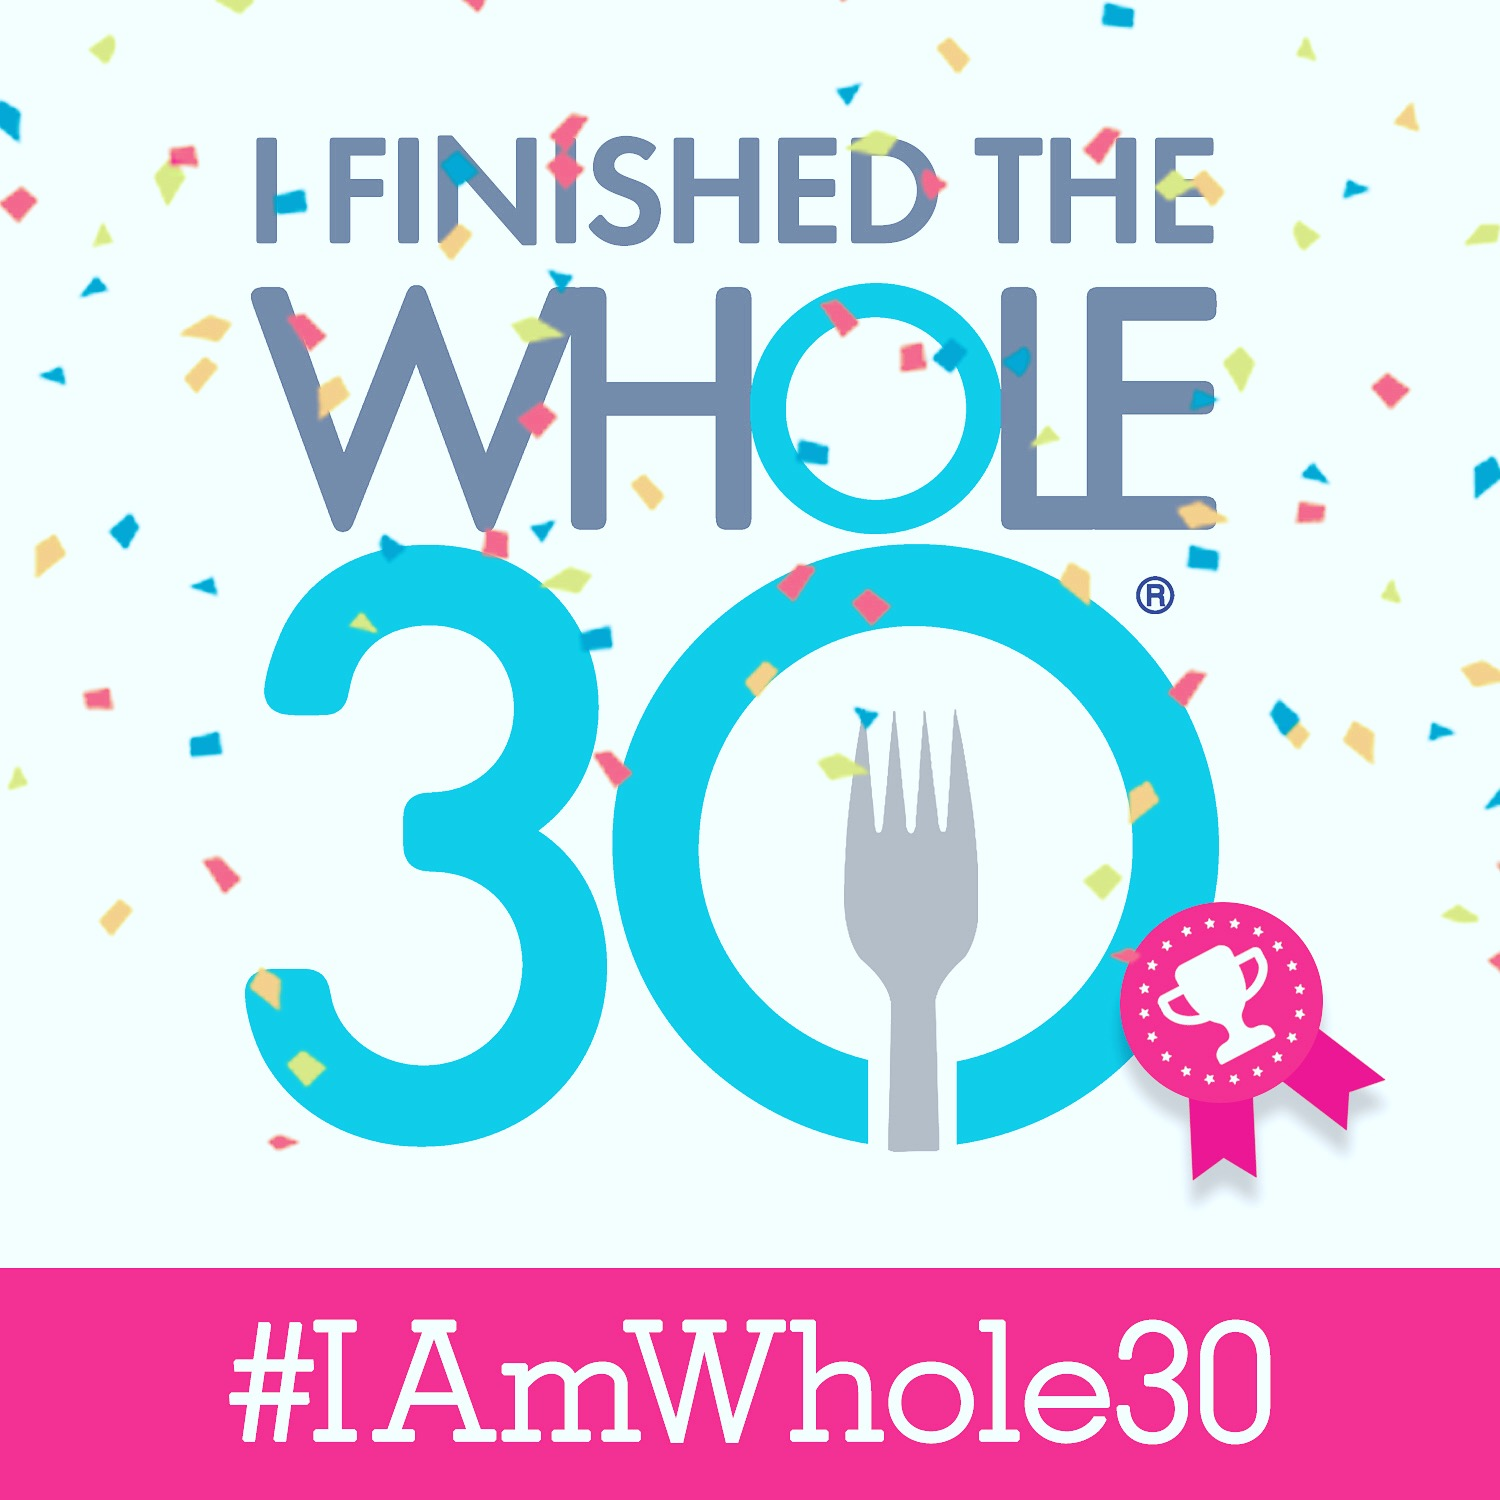 whole30 | IAmWhole30 | health | wellness | food freedom | Moving Mountains Wellness